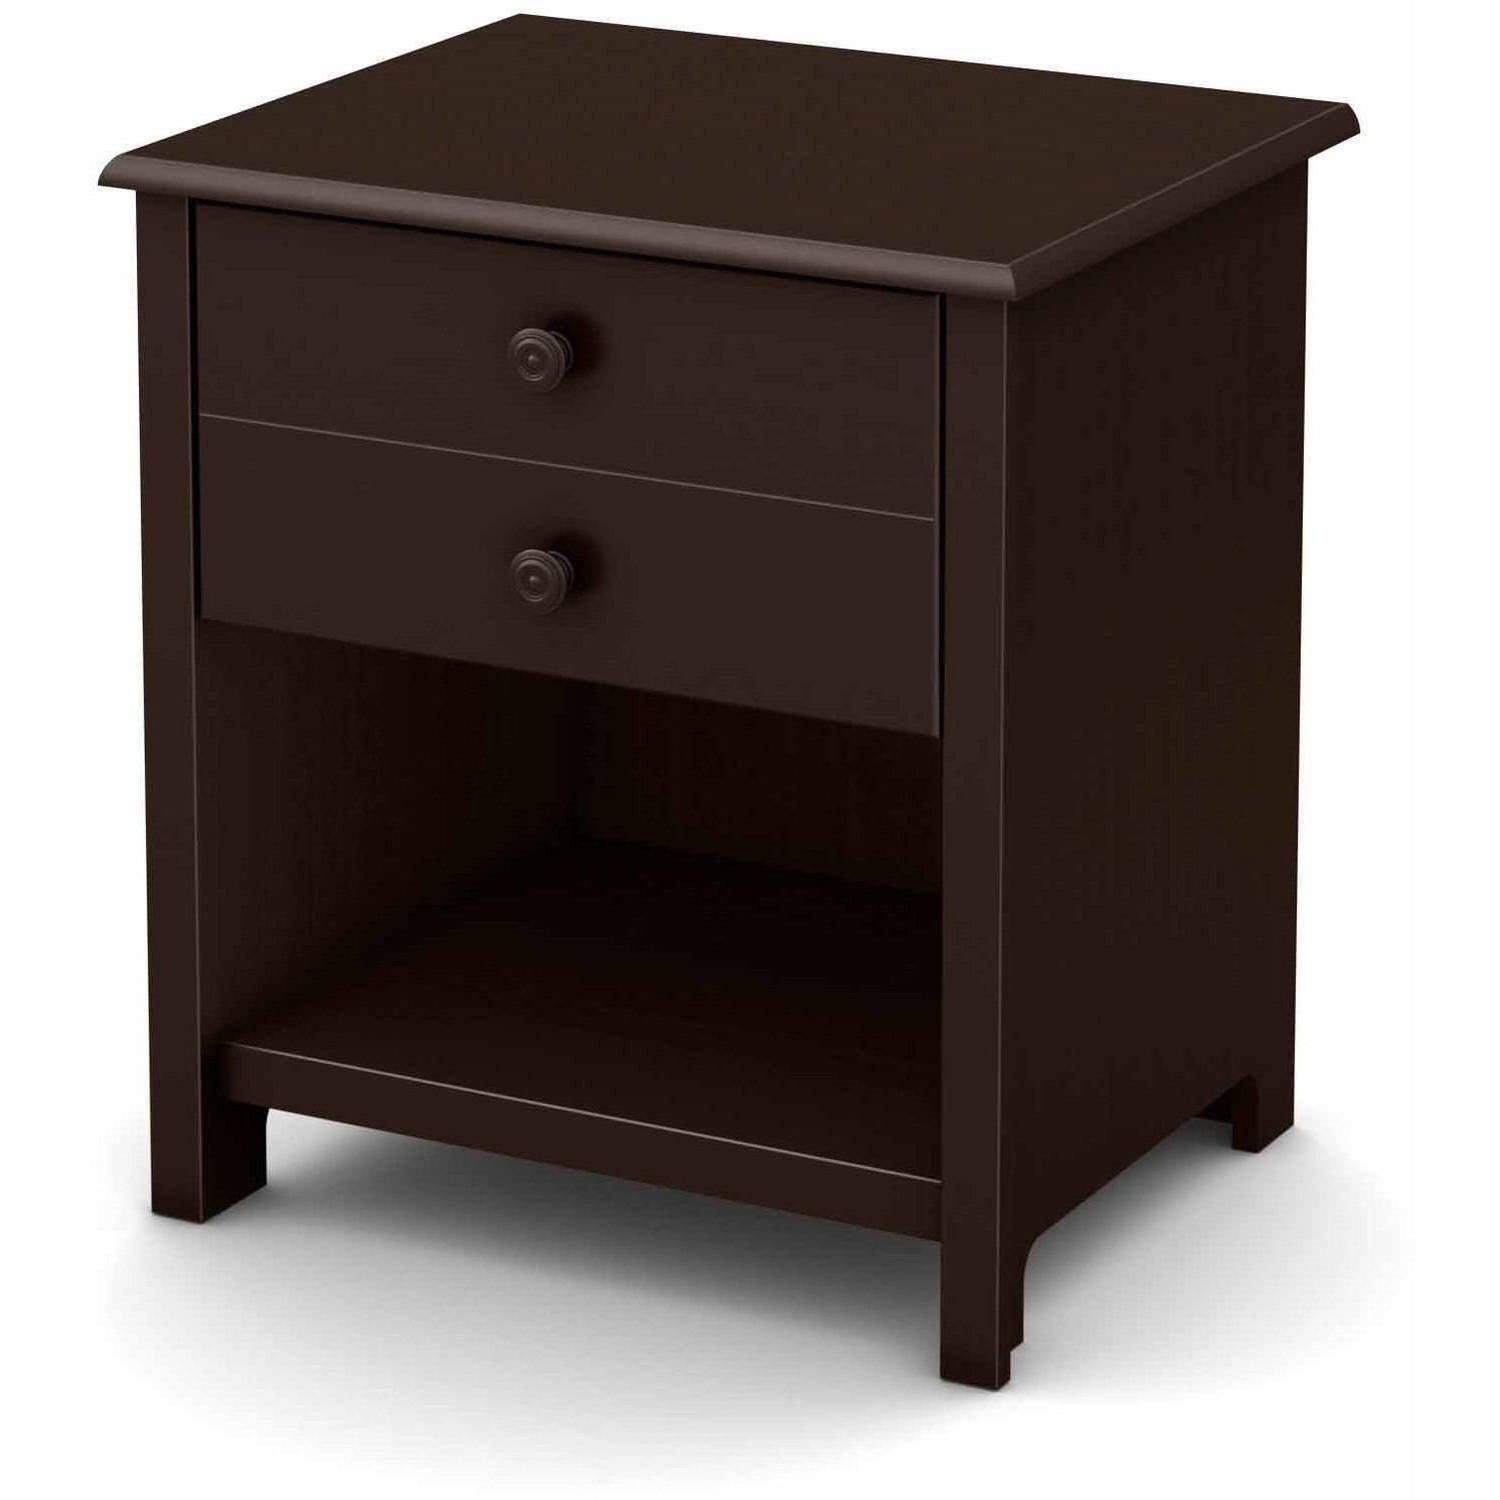 South Shore Little Smileys 1-Drawer Nightstand, Multiple Finishes